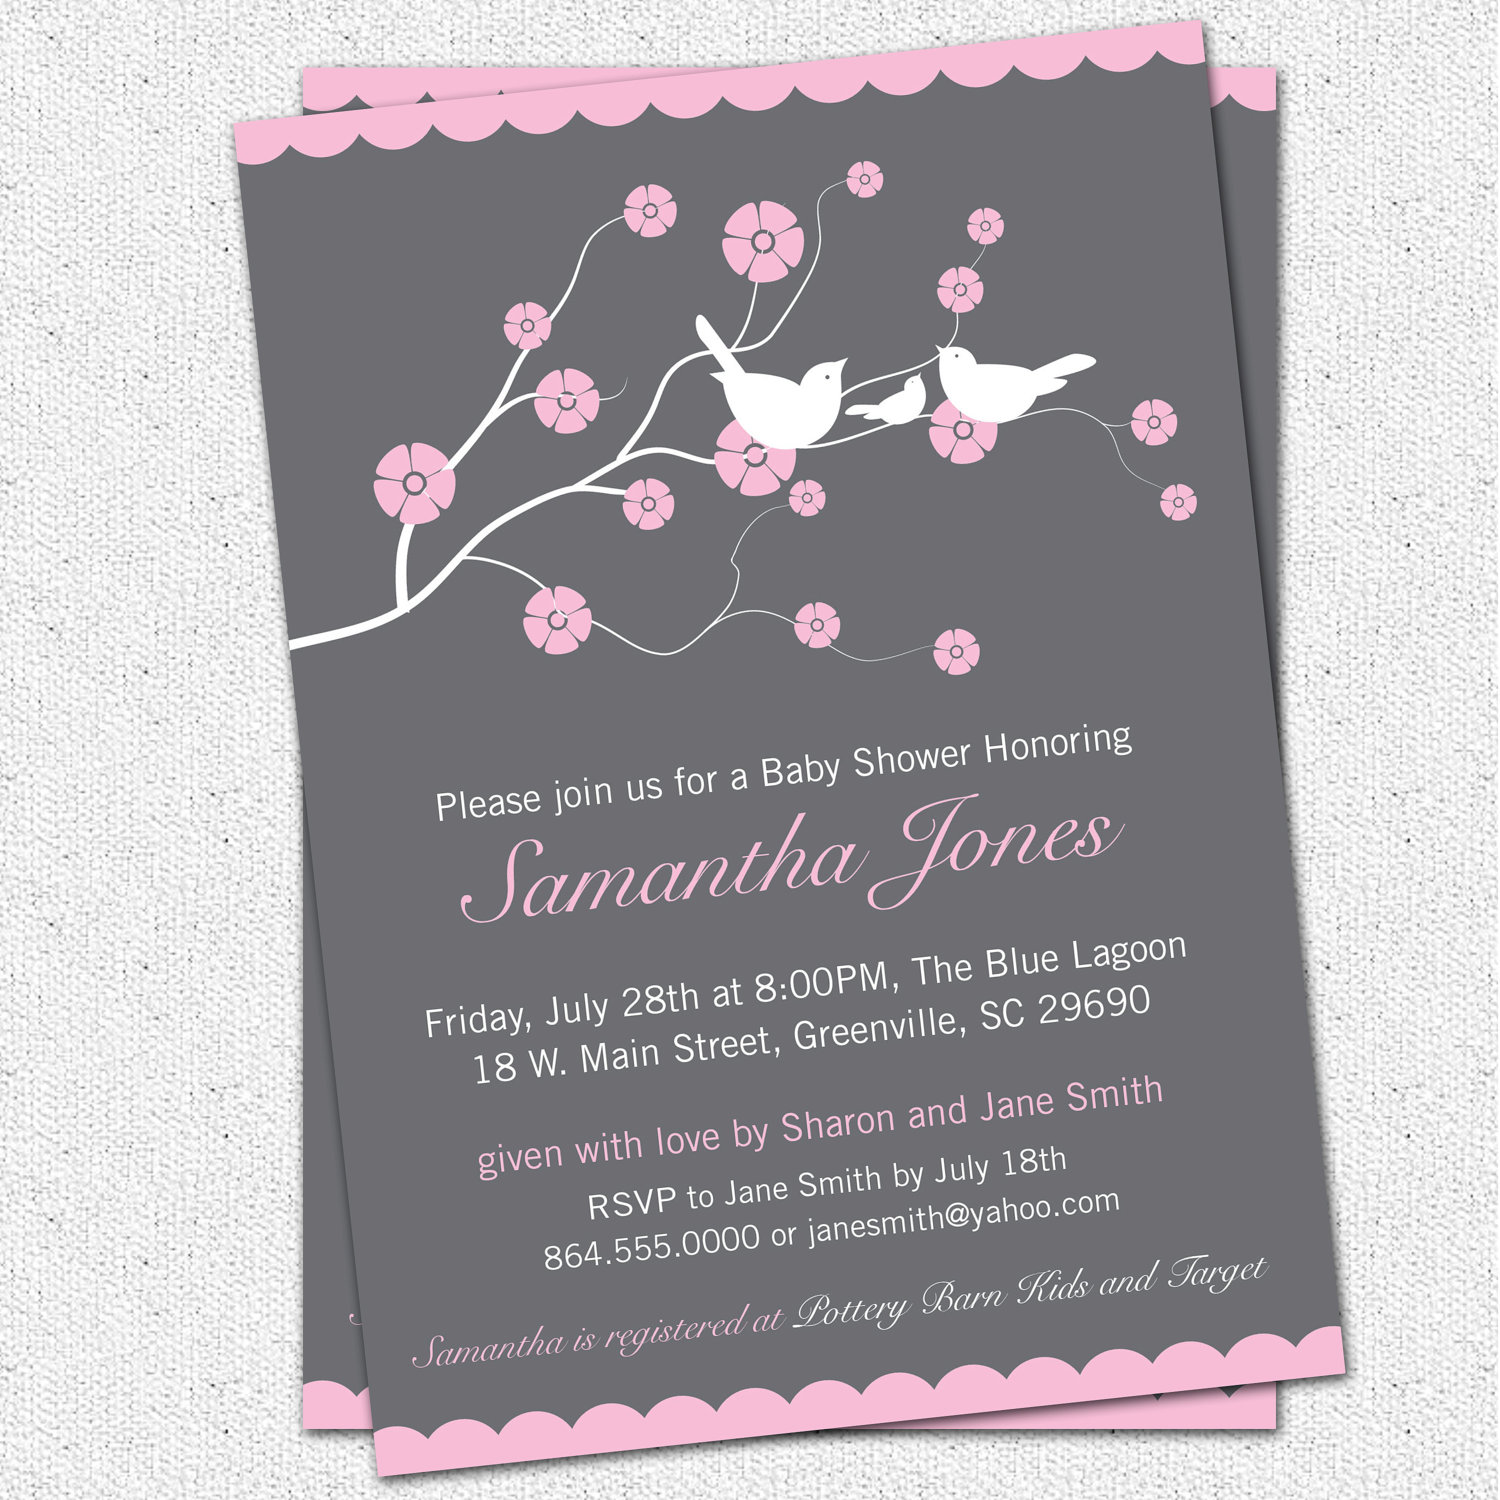 Baby shower invitations cherry blossom birds girl pink charcoal il fullxfull267260237 original filmwisefo